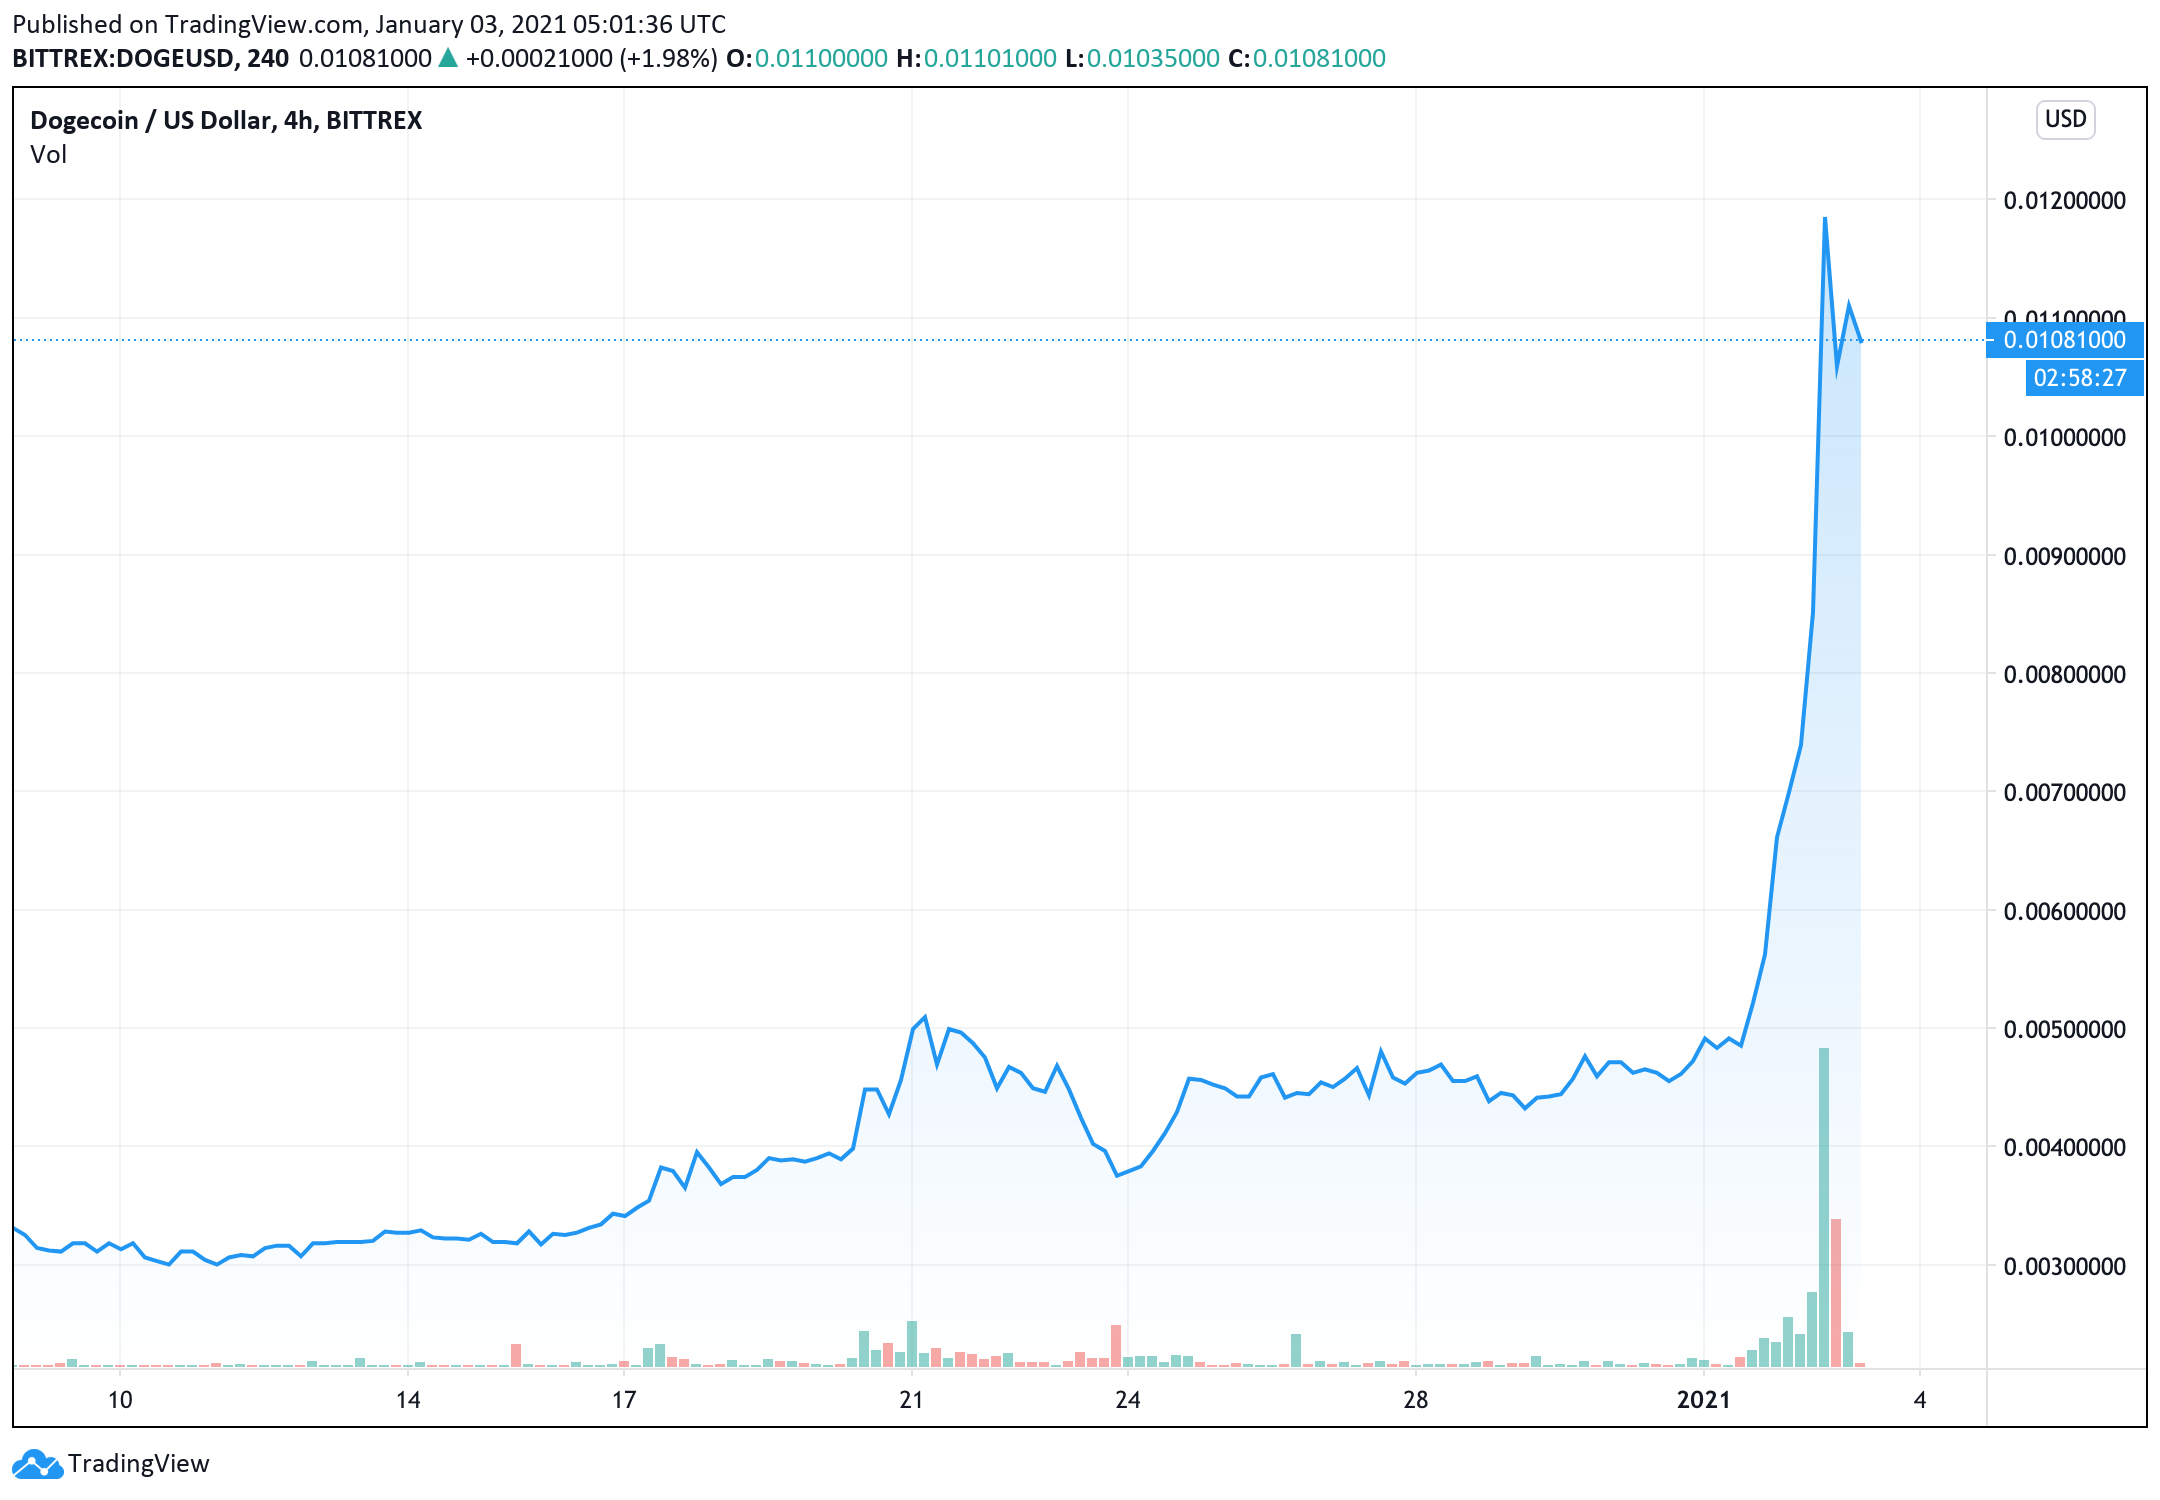 Dogecoin Price Is Up 100 In The Past Day Alone And It Has Gained Over 200 In The Past Two Weeks Azcoin News